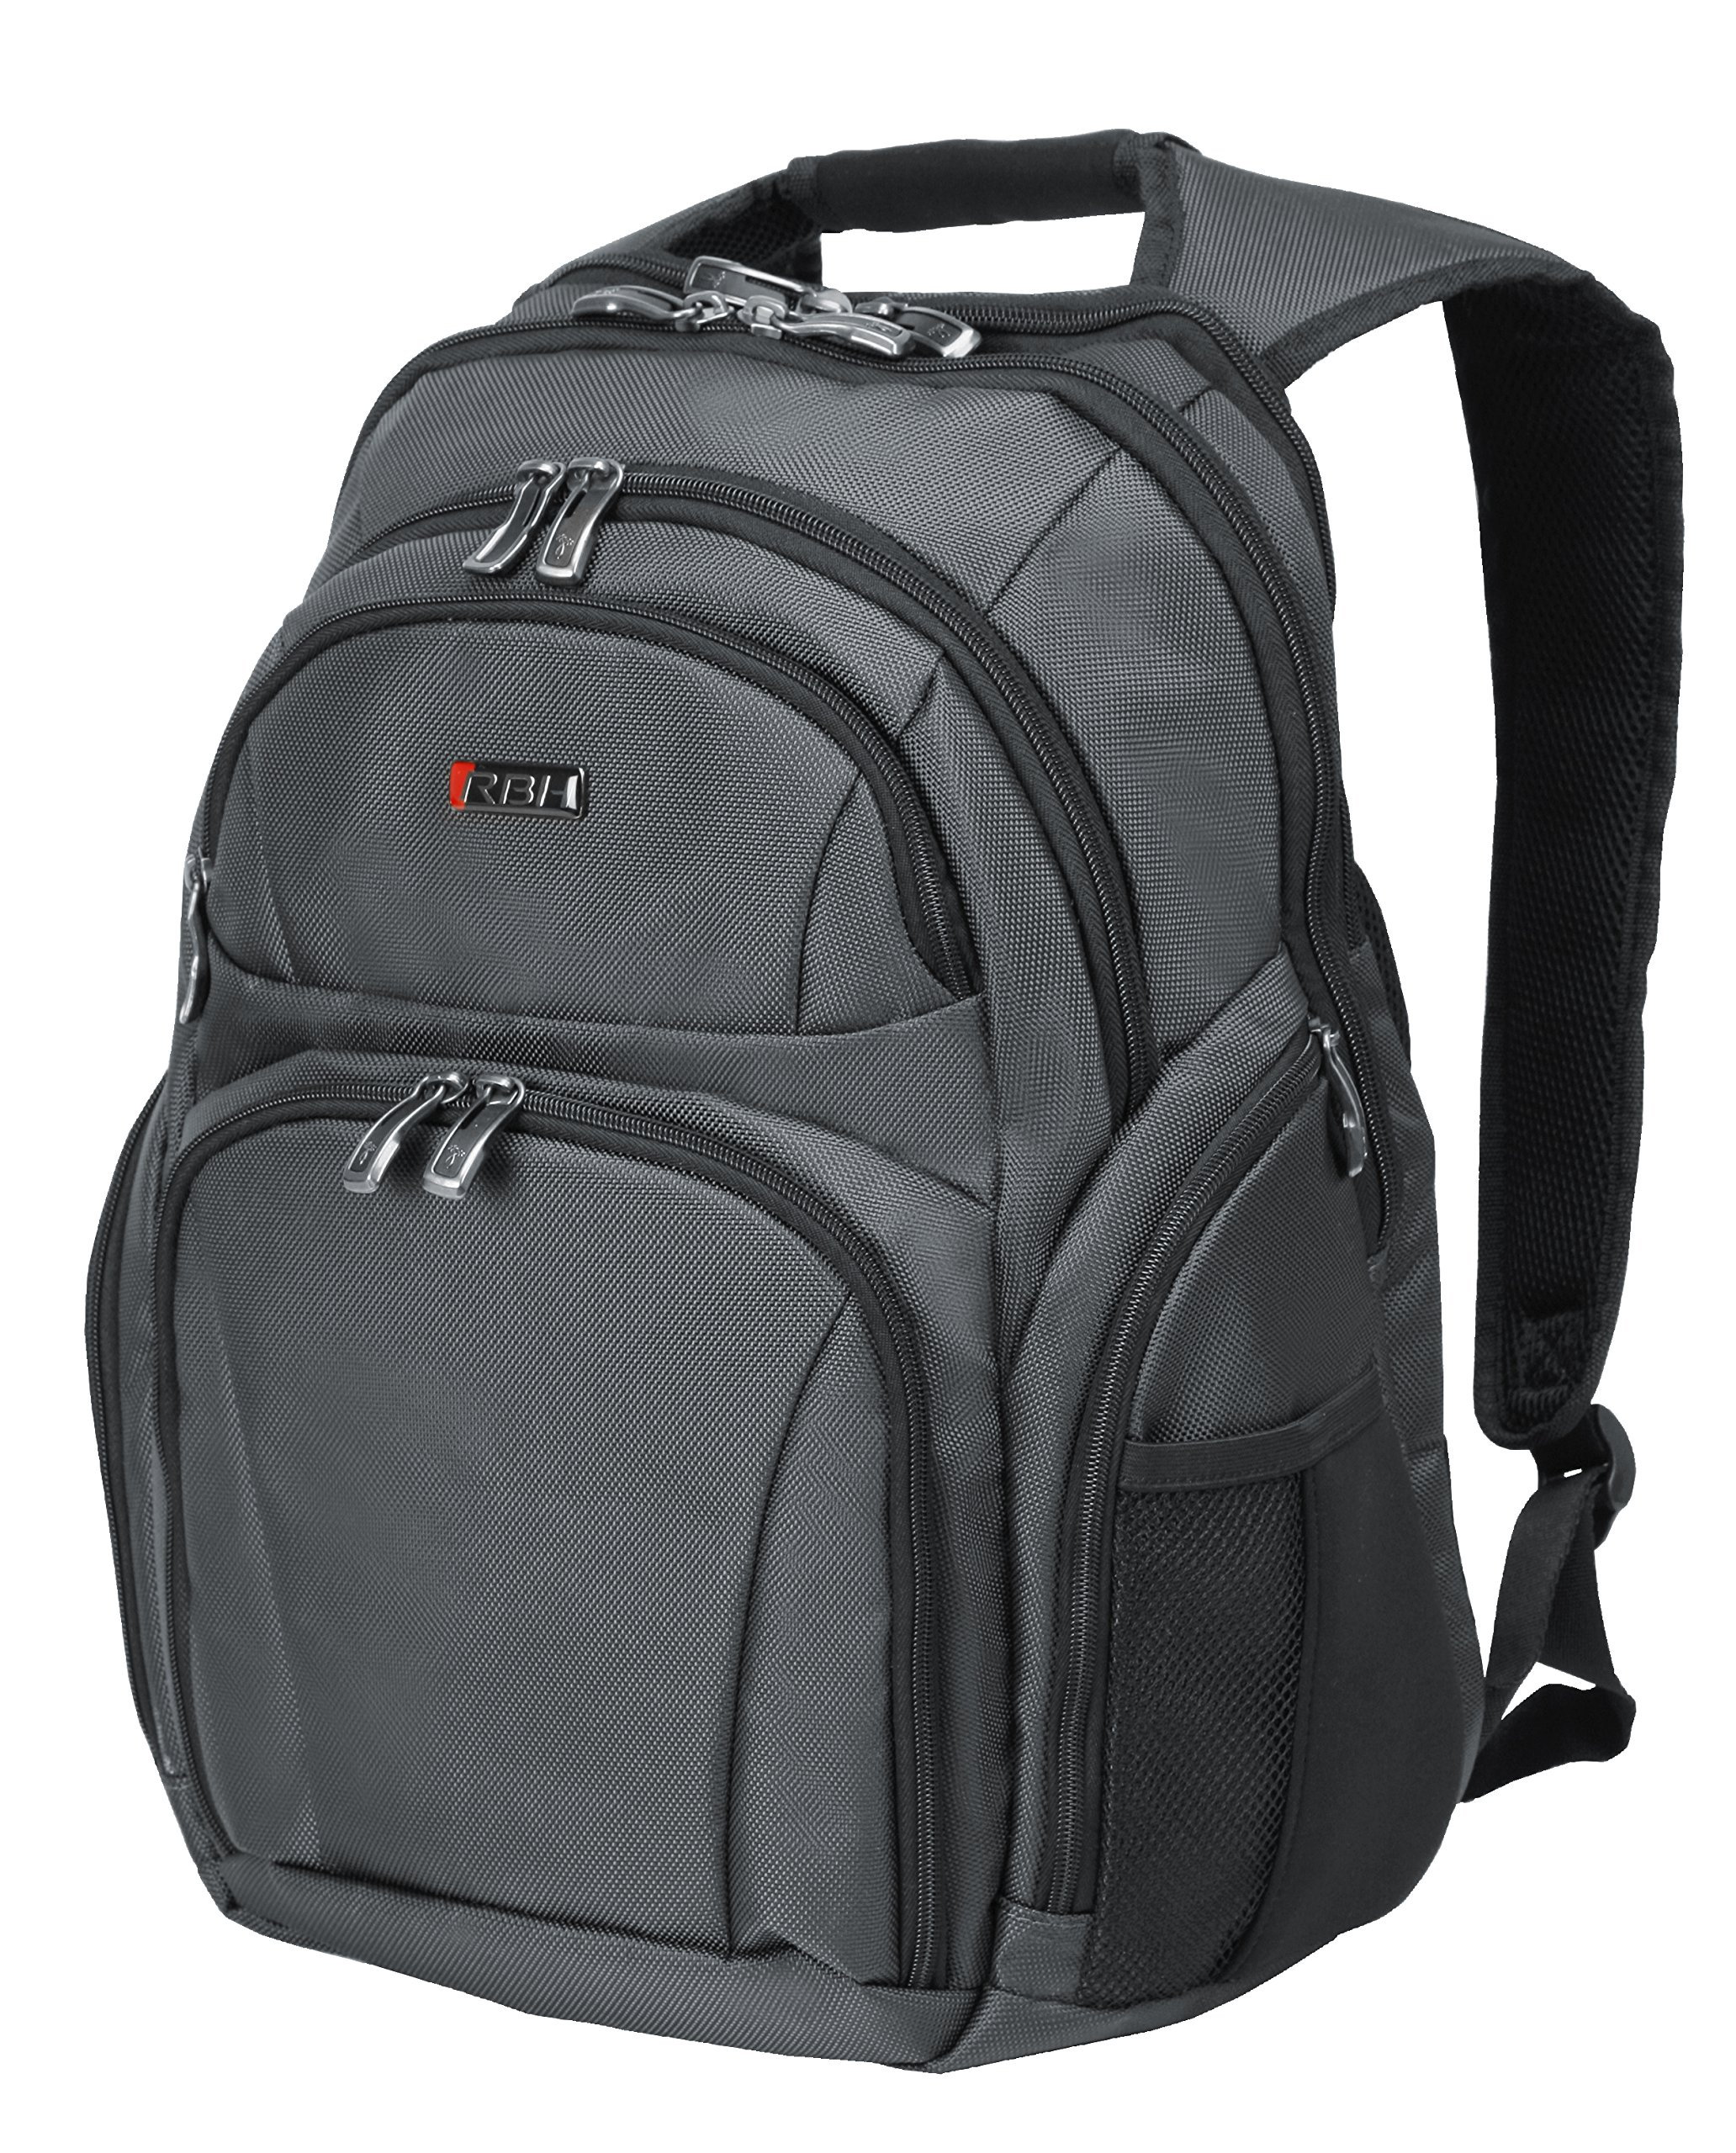 Ricardo Beverly Hills Bel Aire 18-Inch Business Backpack, Charcoal, One Size